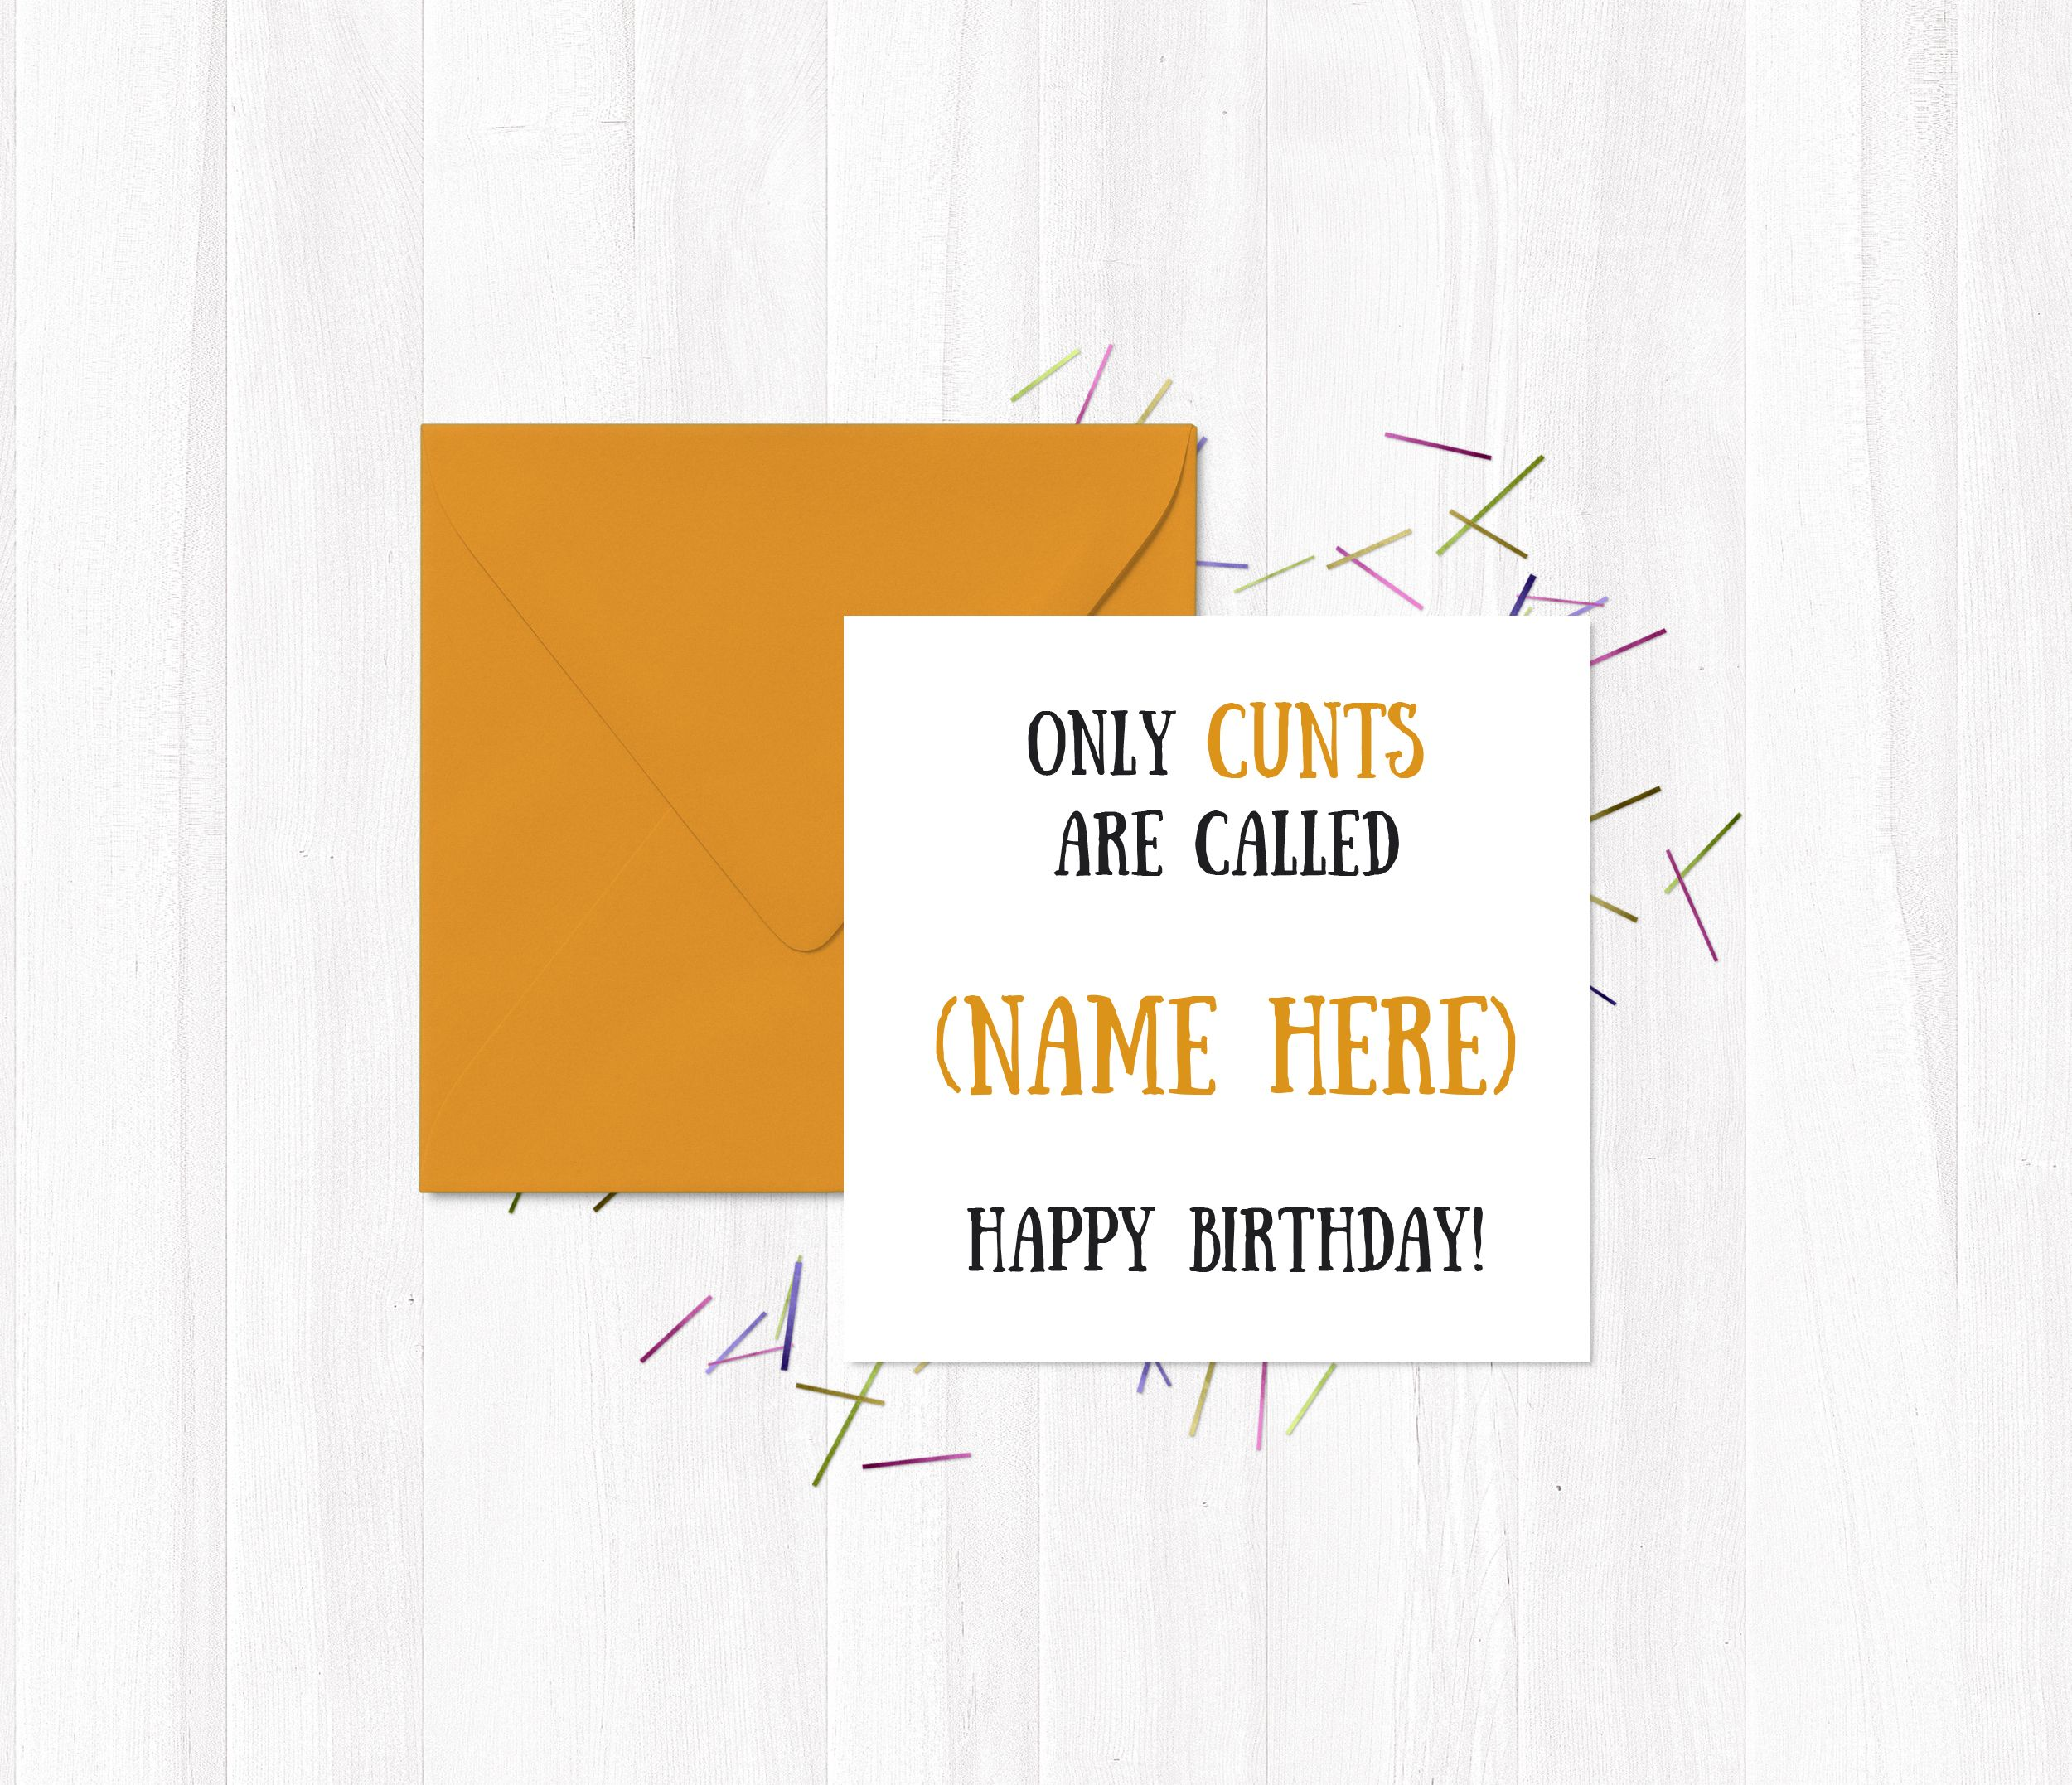 Only cunts are called name here happy birthday birthday cards funny greetings cards only cunts are called name here happy birthday cunt m4hsunfo